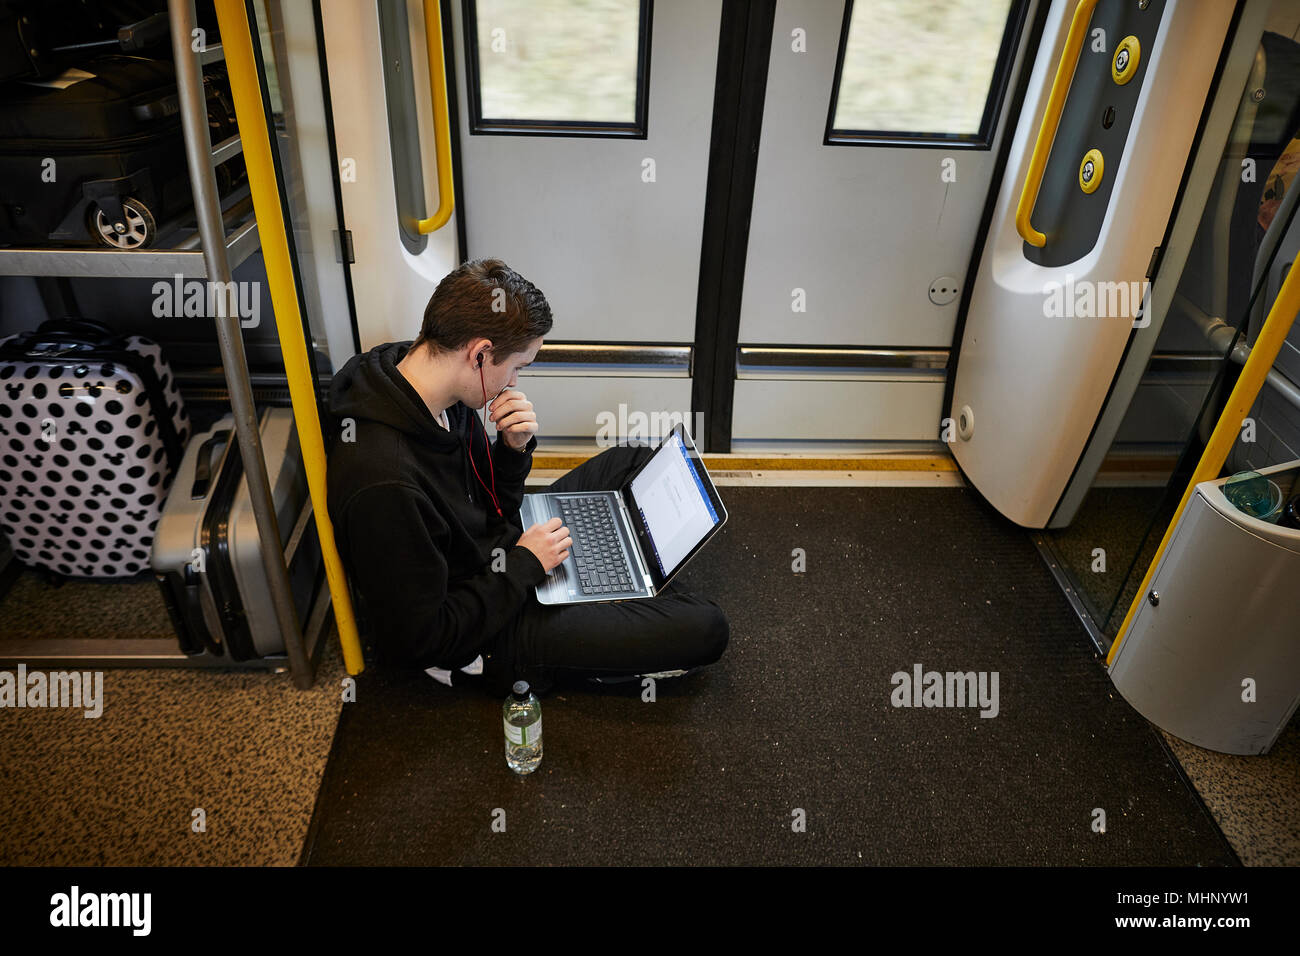 Glasgow in Scotland,   Glasgow Central to Manchester Airport Transpennie Express train with passenger standing, young man working int he doorway - Stock Image